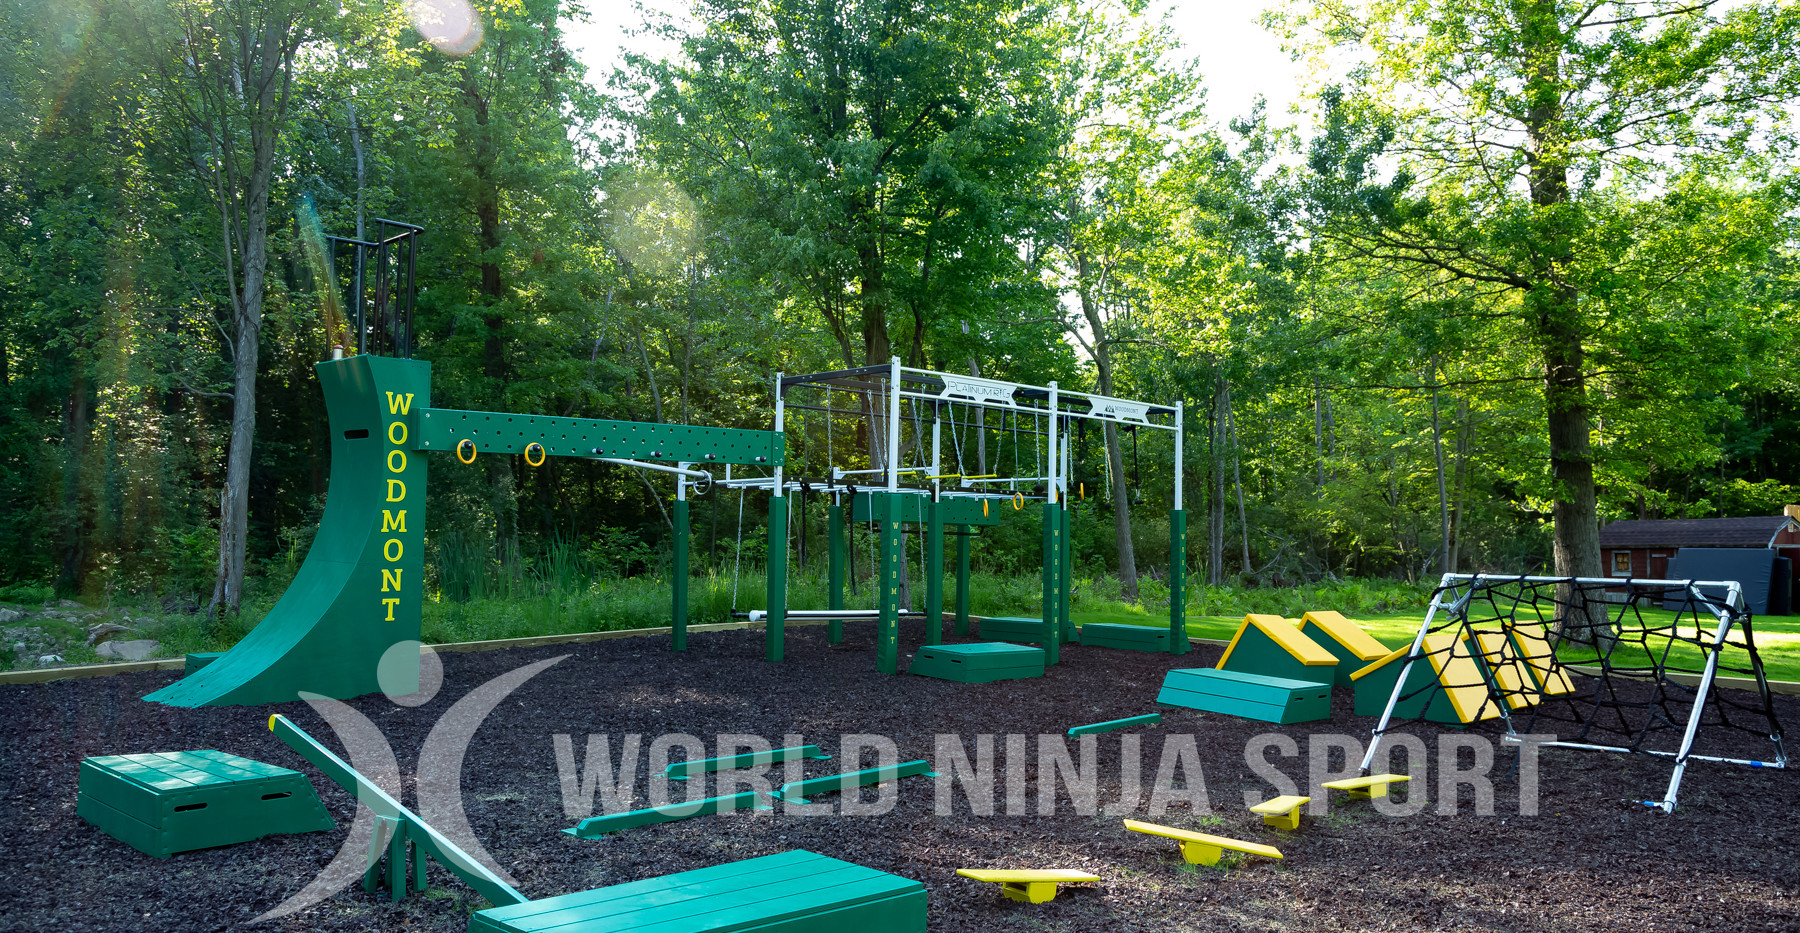 World Ninja Sport - Woodmont 1.jpg